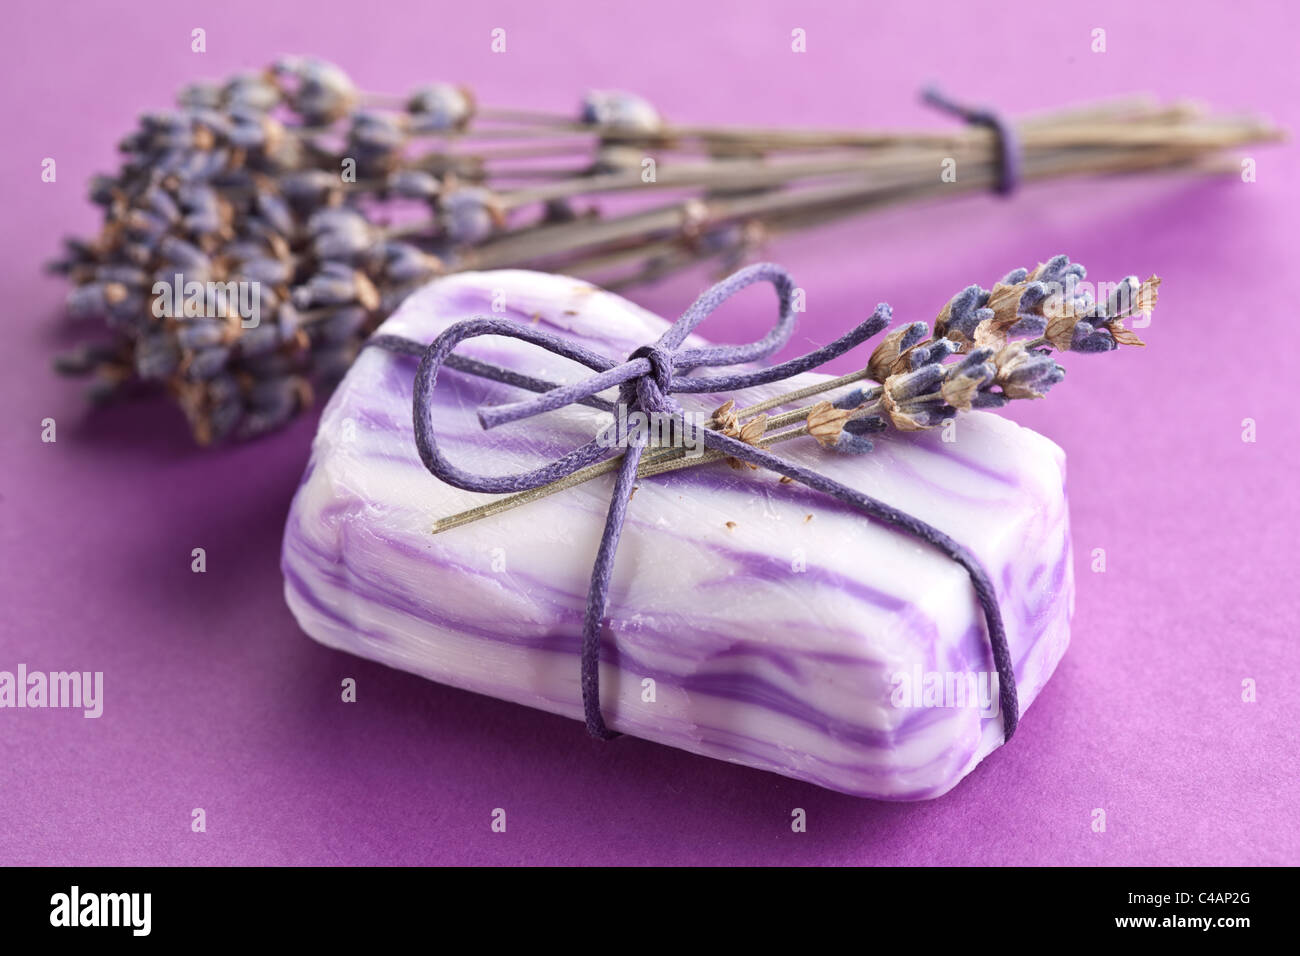 Soap with dried lavender. - Stock Image